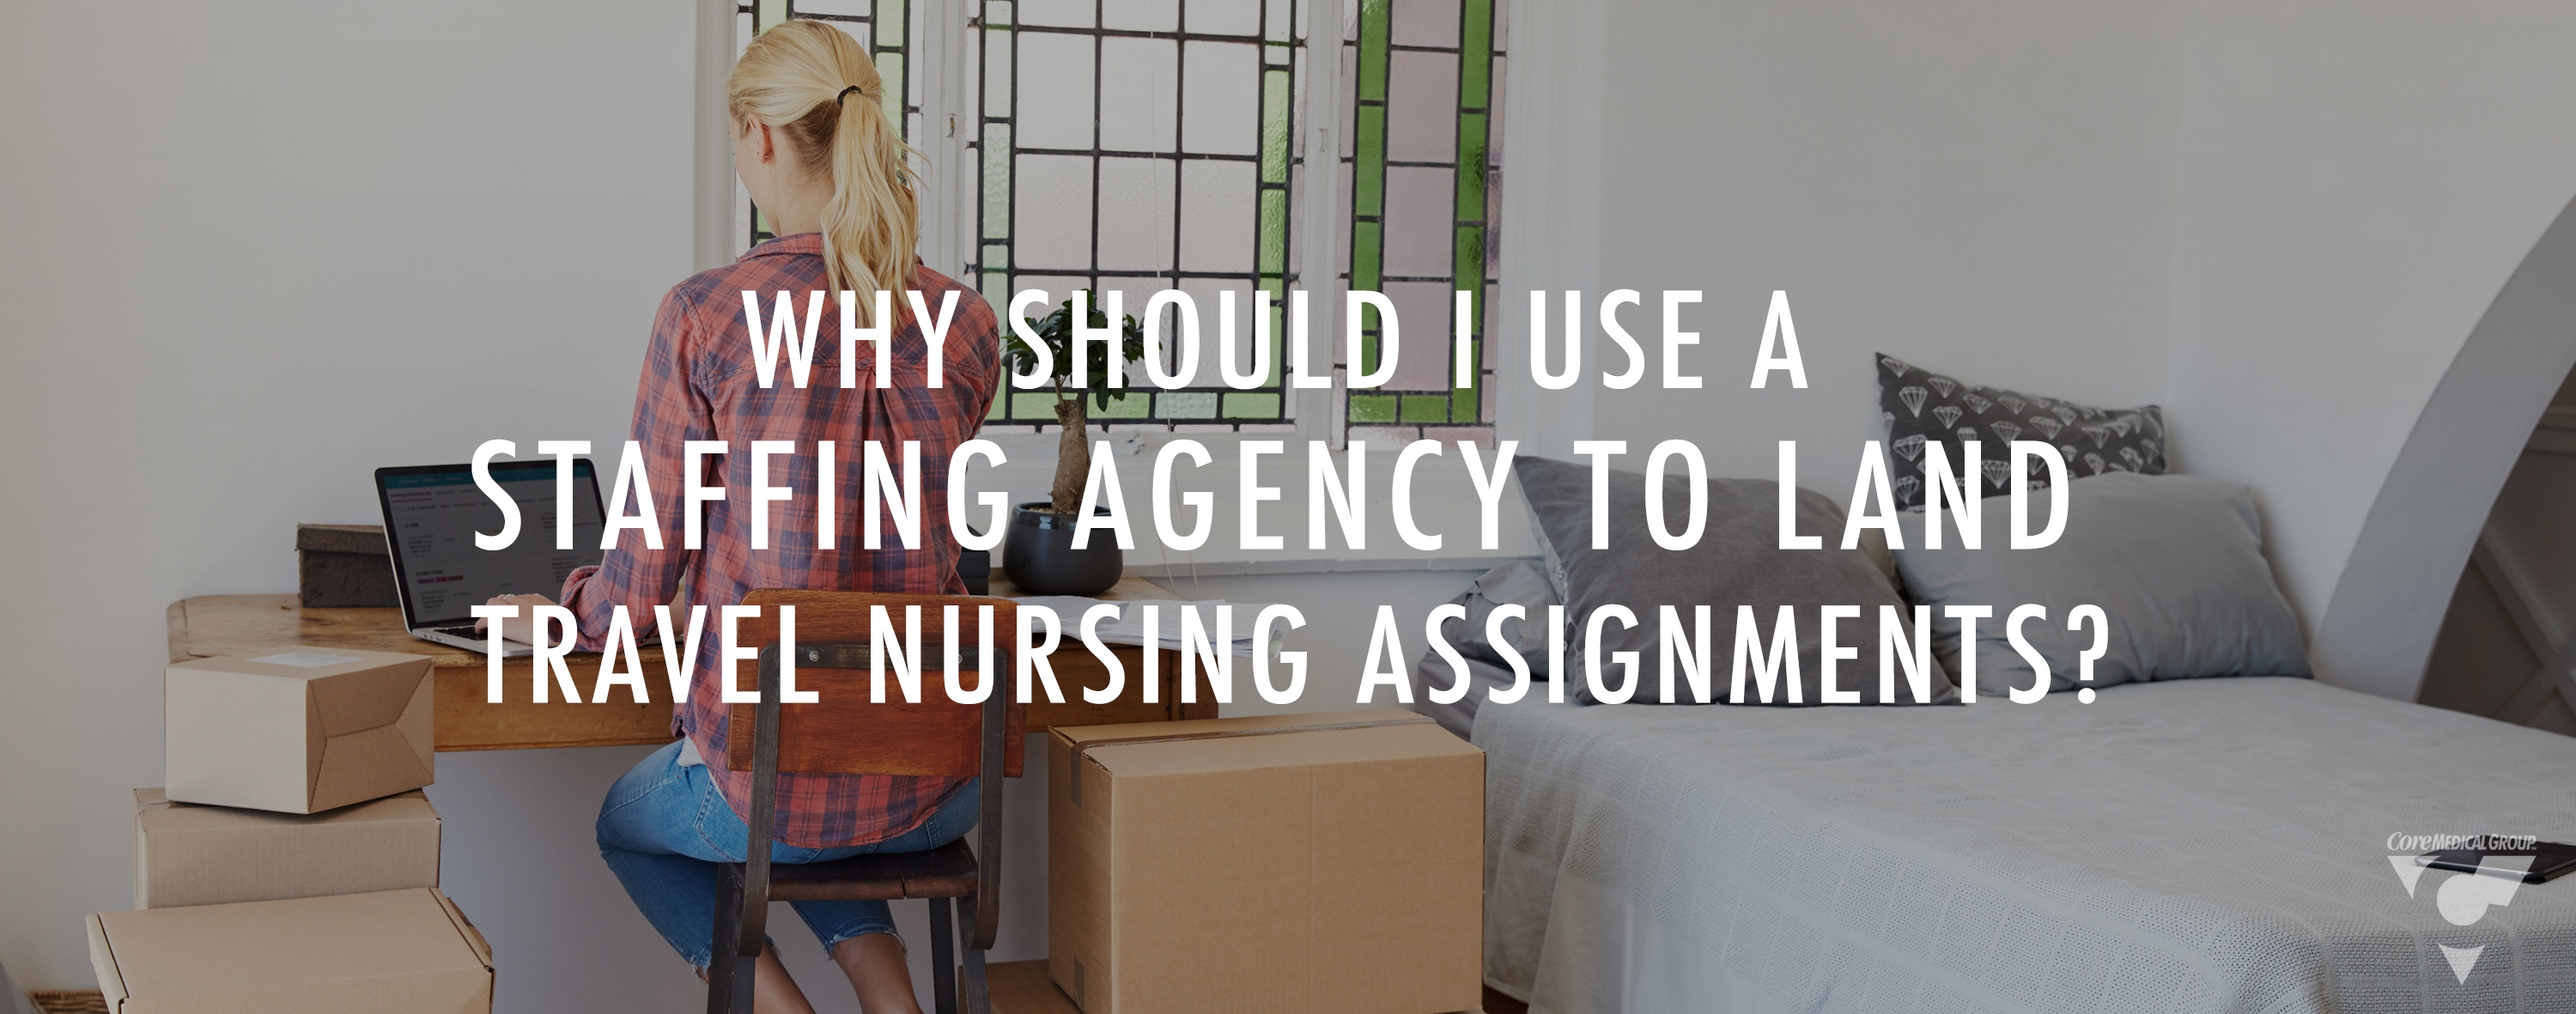 Why Should I Use A Staffing Agency To Land Travel Nursing Assignments